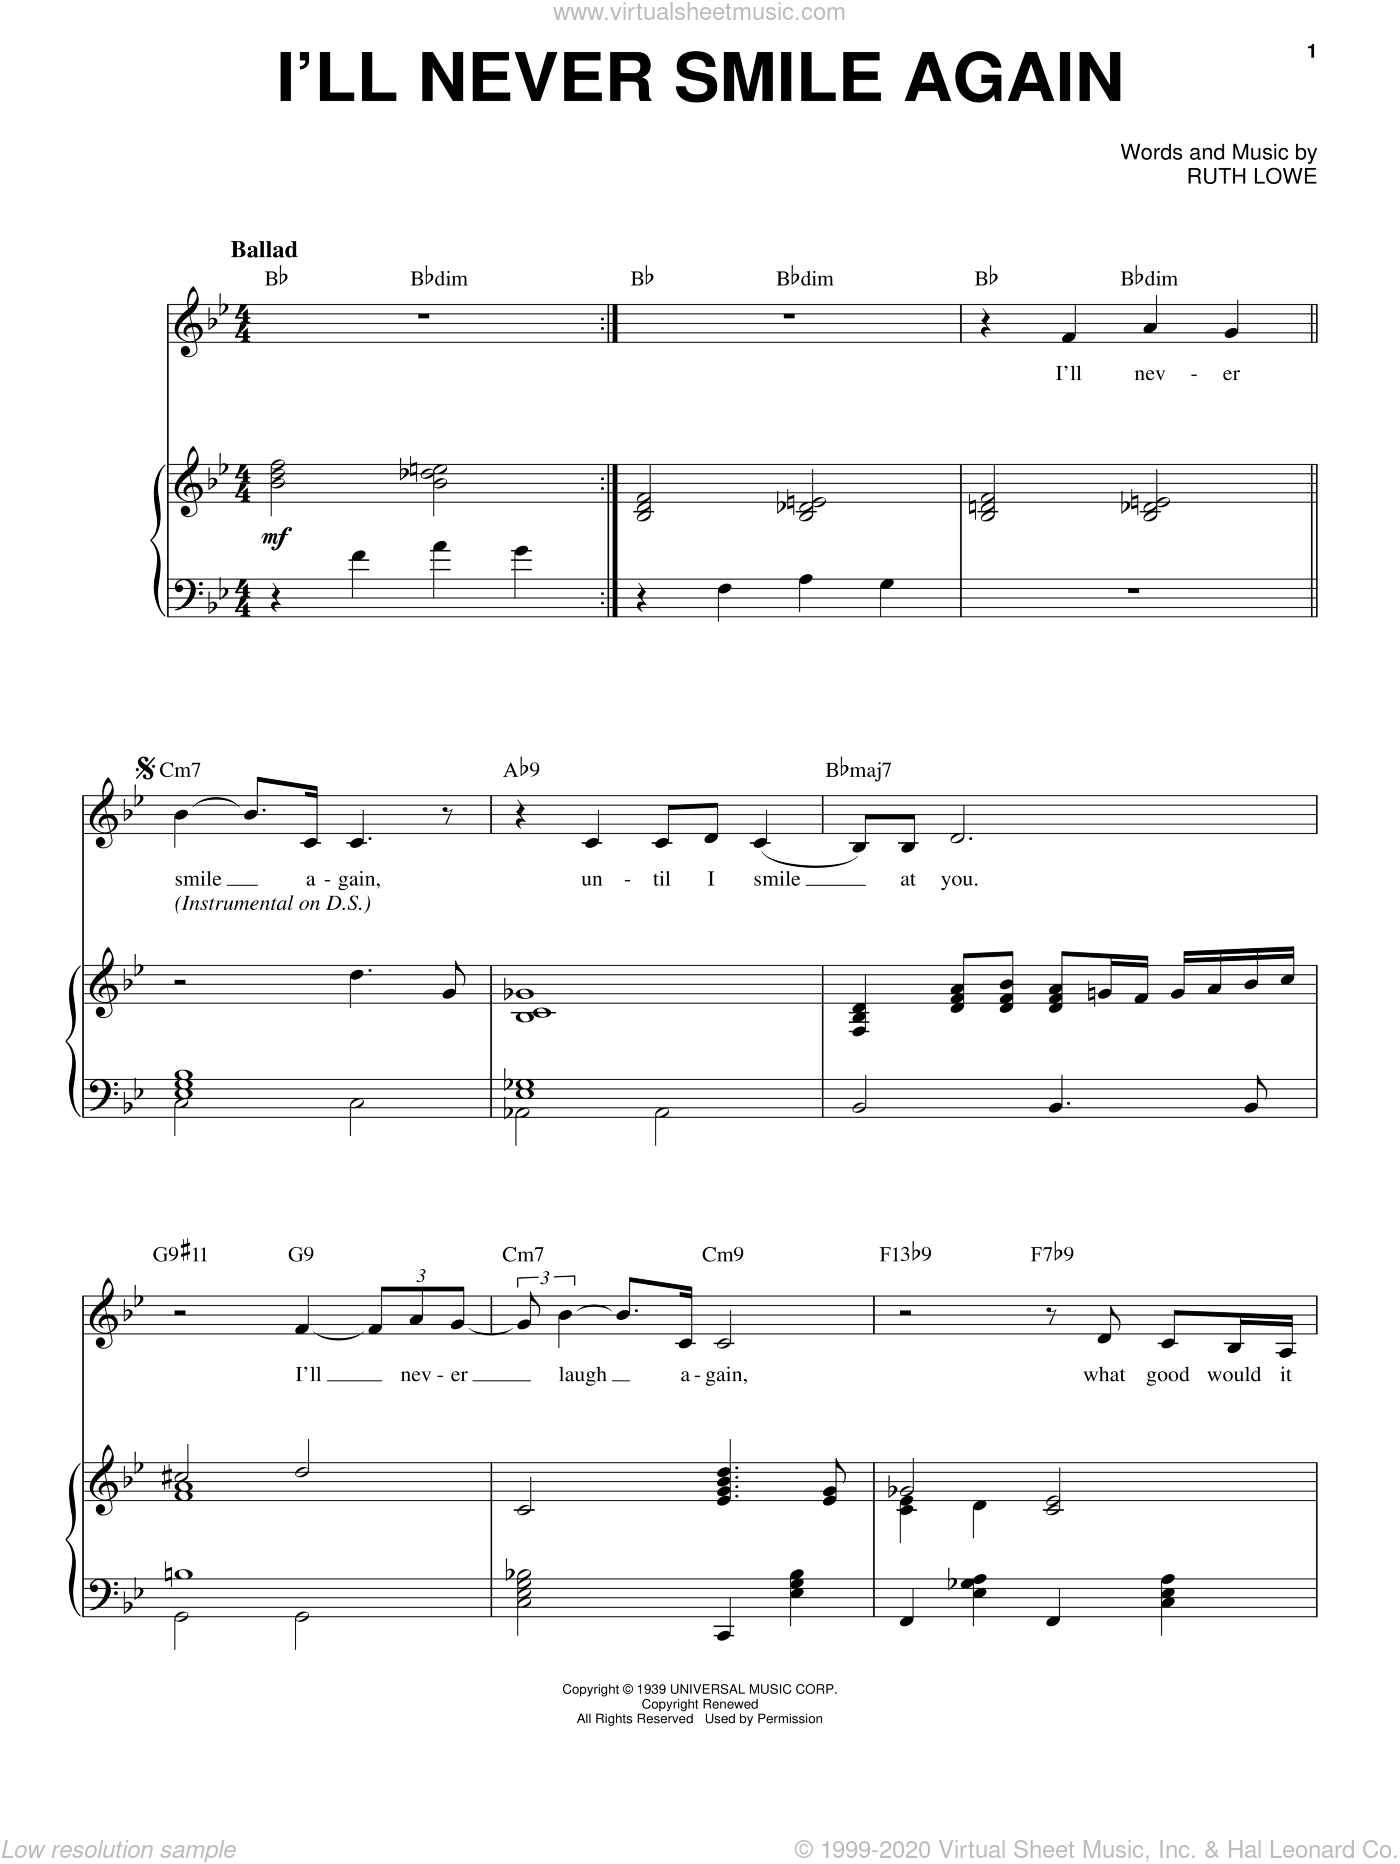 I'll Never Smile Again sheet music for voice and piano by Frank Sinatra, Tommy Dorsey and Ruth Lowe, intermediate skill level